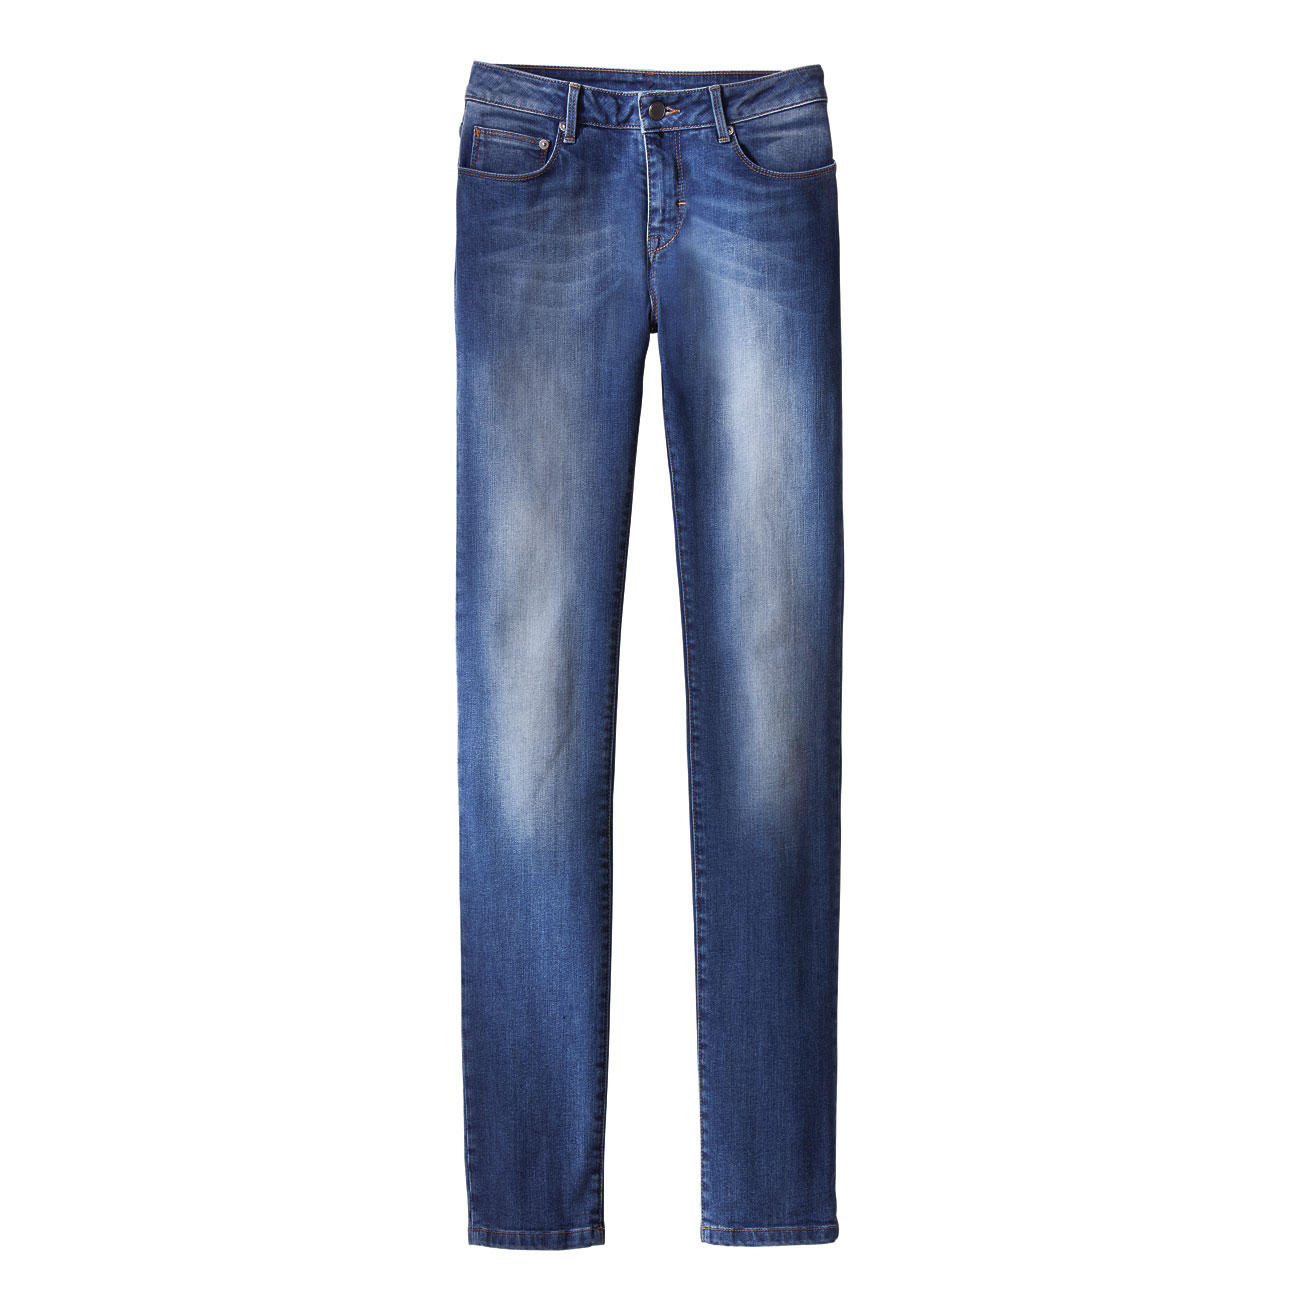 As mentioned above, designer jeans like those from Joe's Jeans will look fabulous on you if you choose the right style for your body type. If you have an hourglass figure, choose a mid- or high-waist pair of jeans that has a boot cut or a tapered leg.